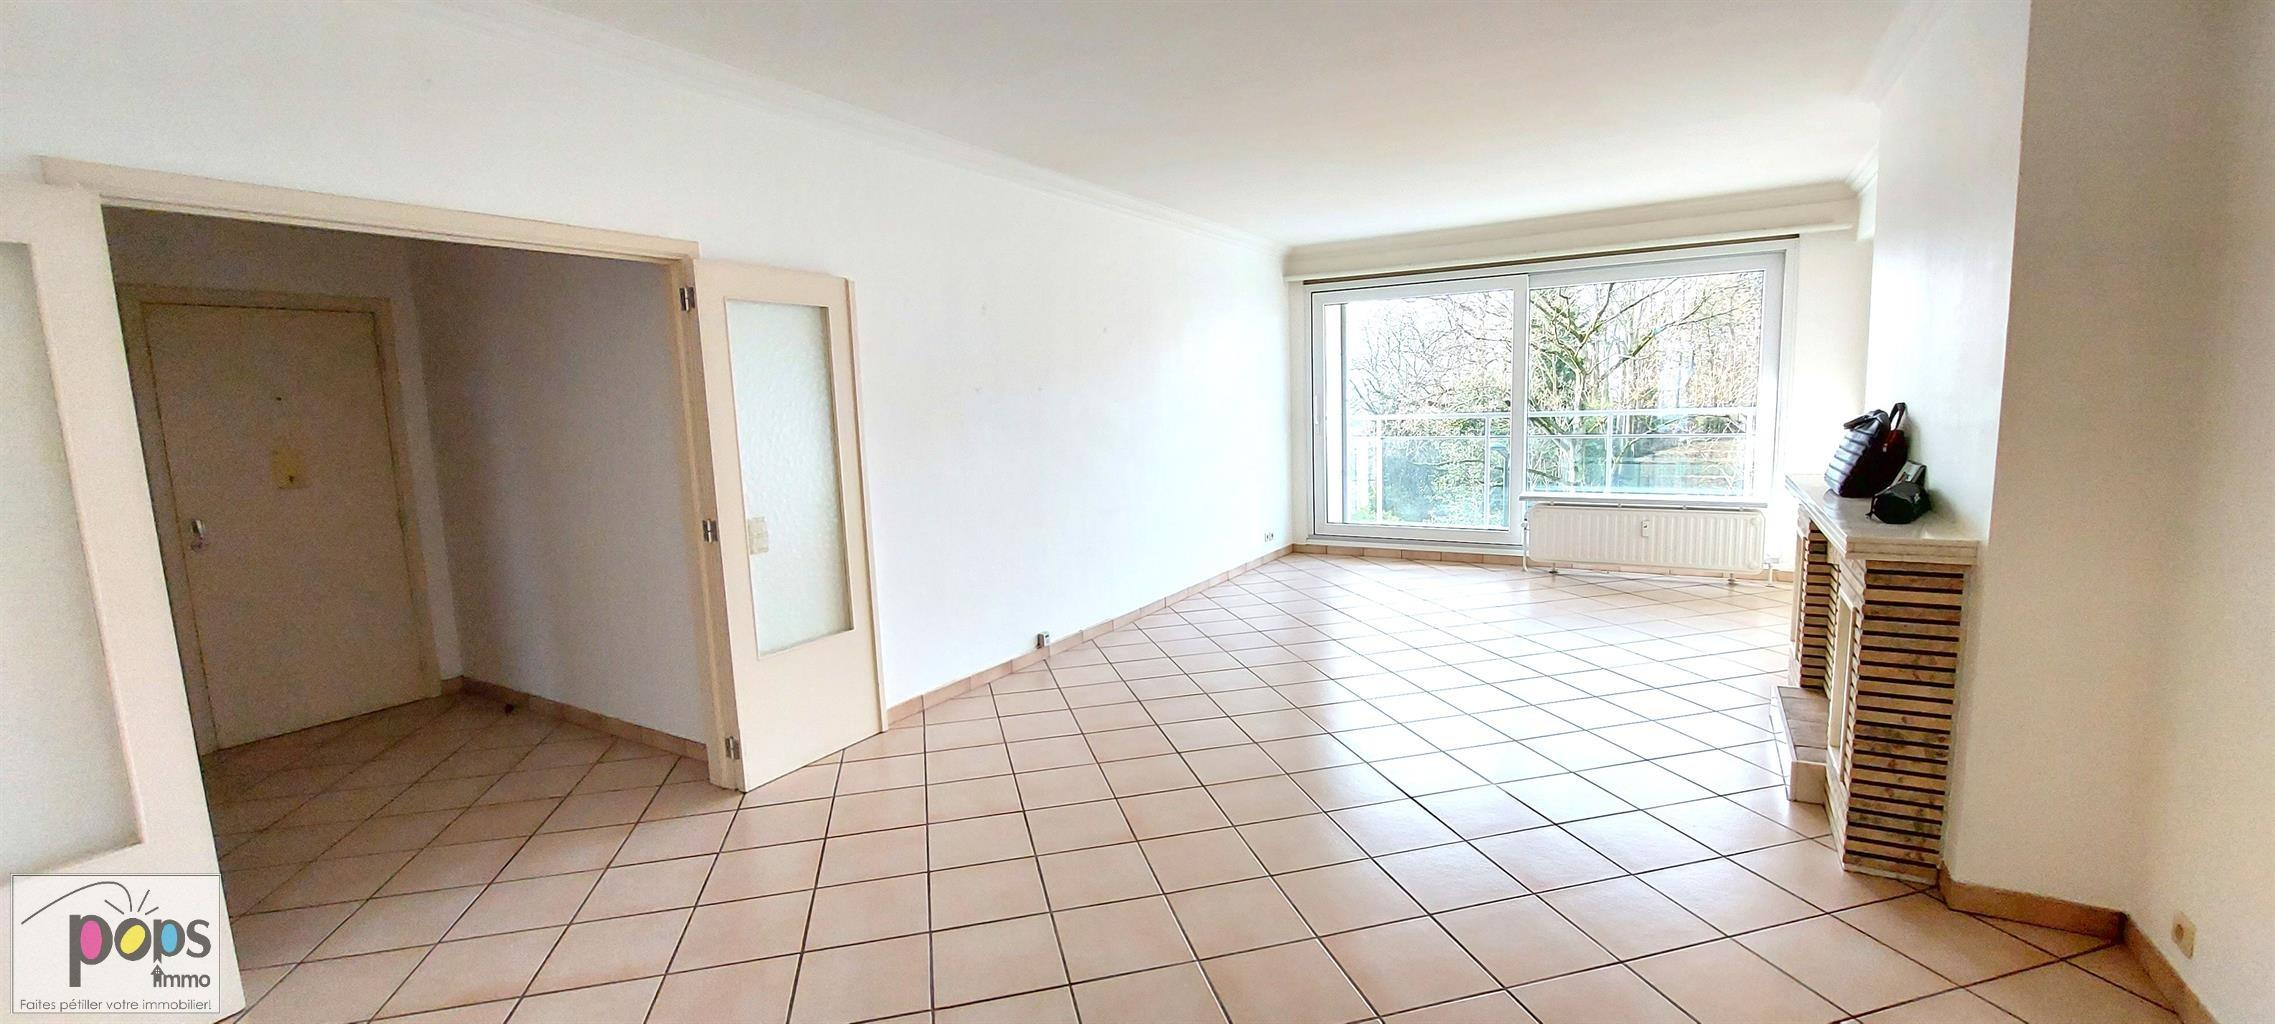 Appartement - Uccle - #4311863-4